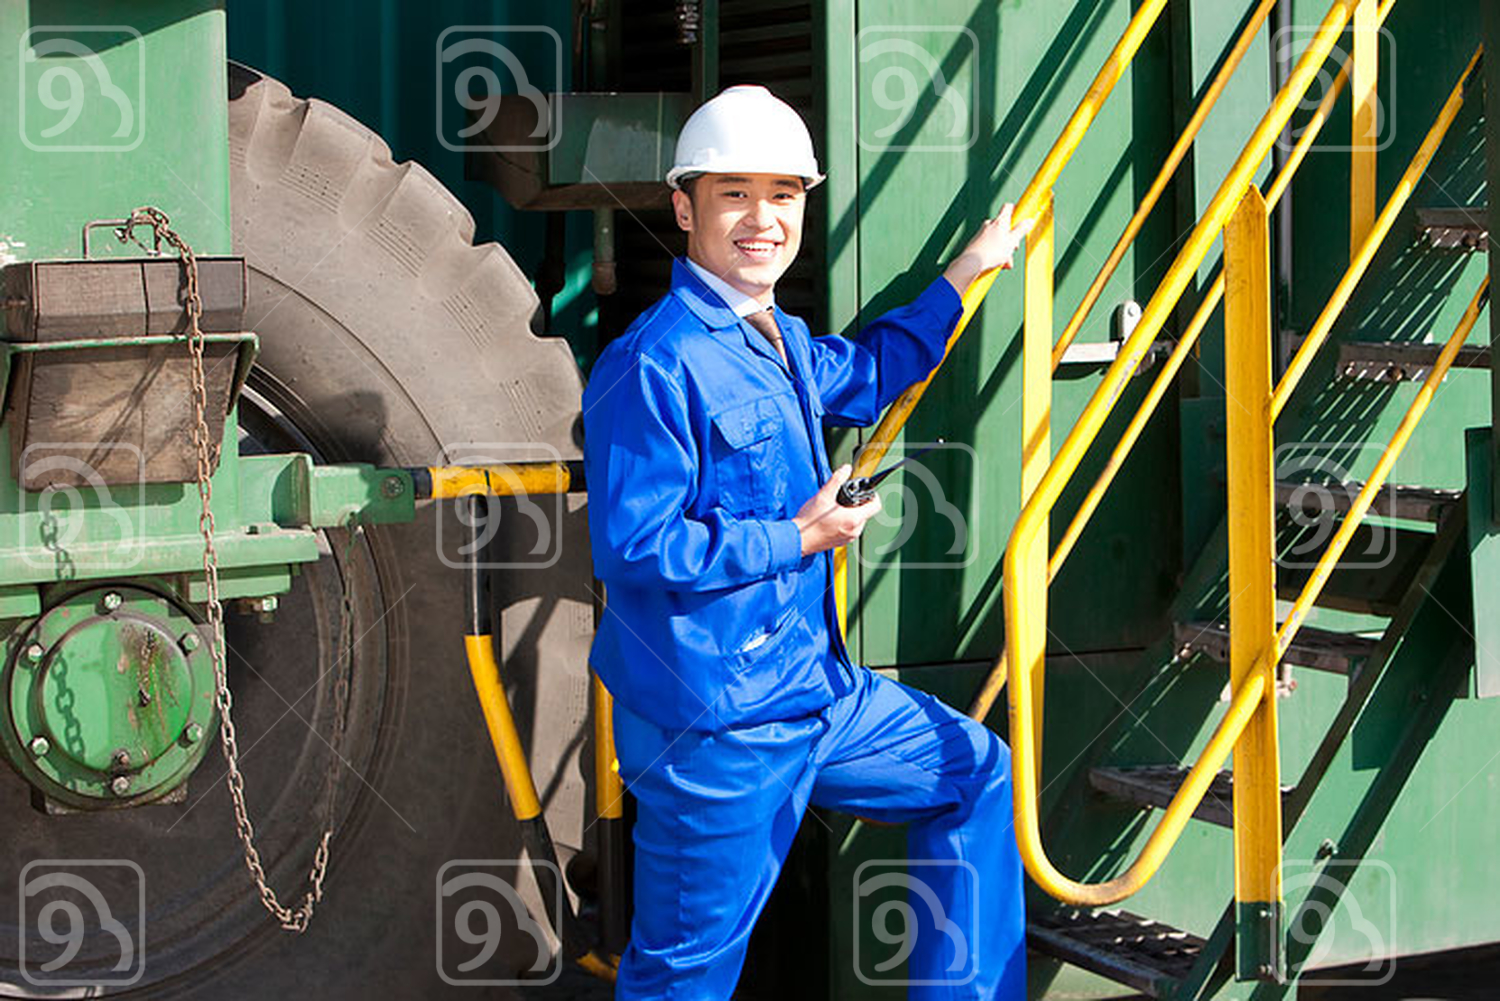 Chinese shipping industry manager with a walkie-talkie going up stairs